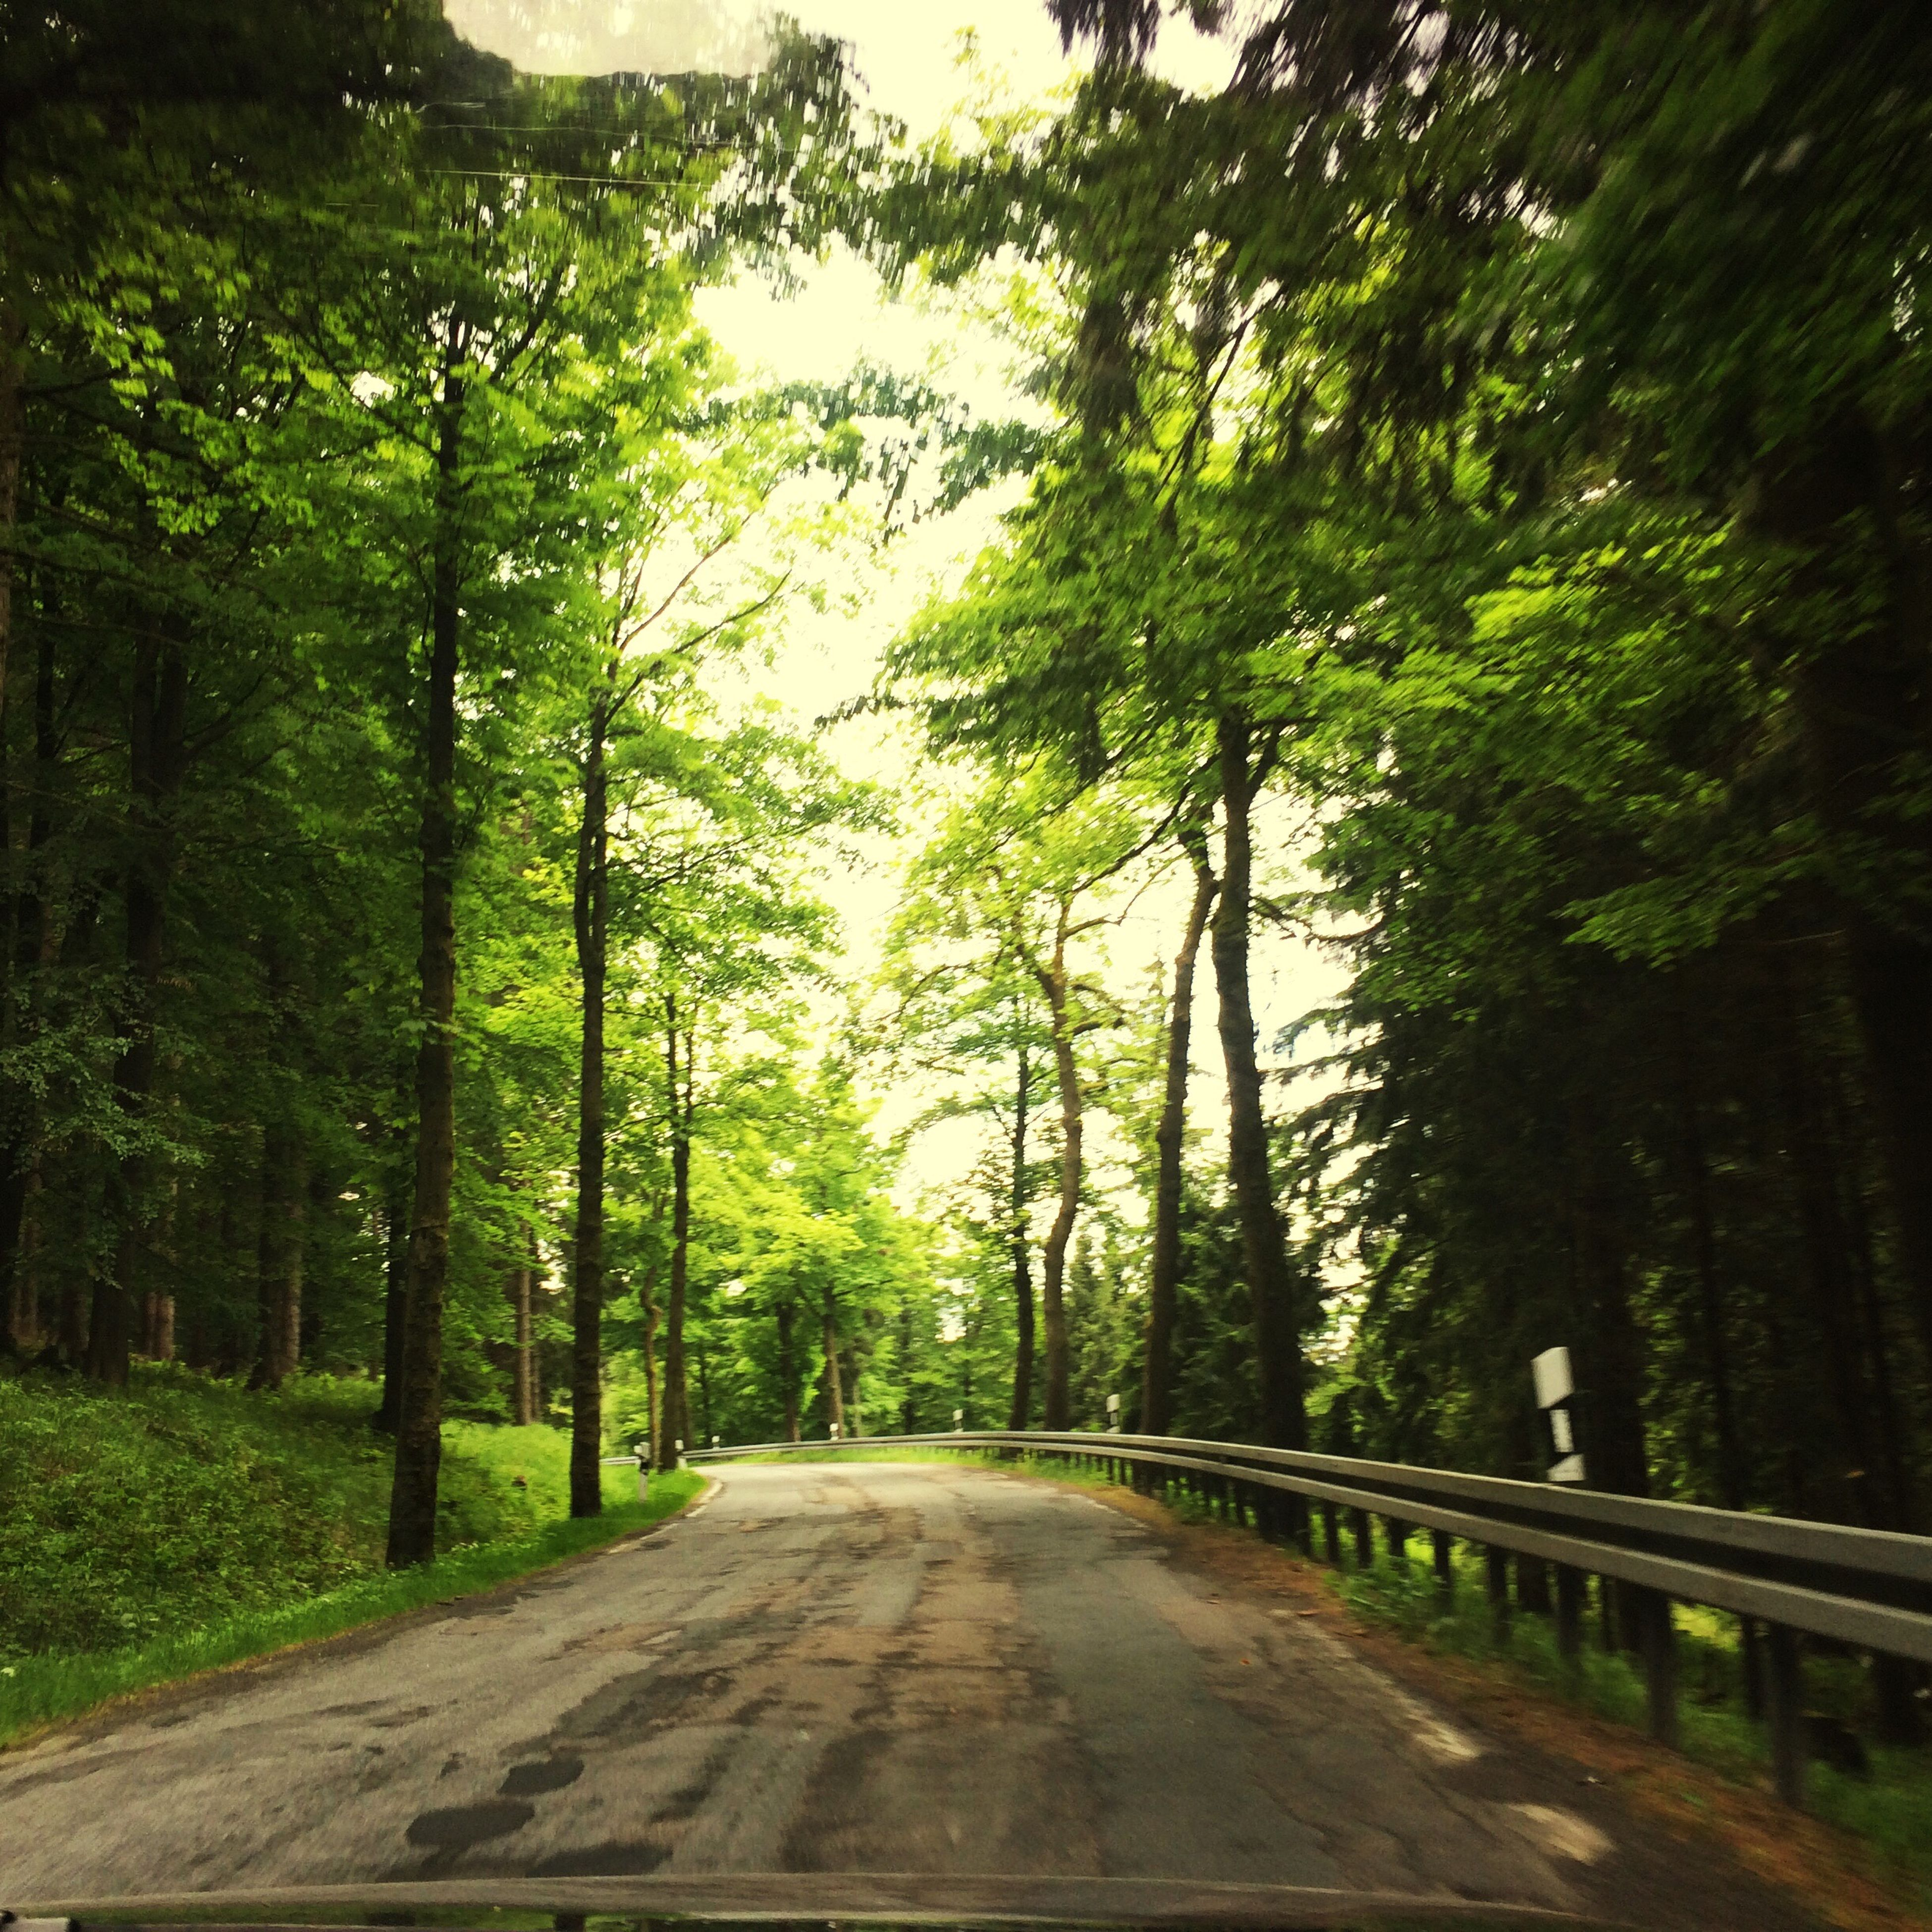 tree, the way forward, diminishing perspective, transportation, road, vanishing point, tranquility, growth, green color, forest, nature, tranquil scene, beauty in nature, empty road, lush foliage, treelined, scenics, empty, day, long